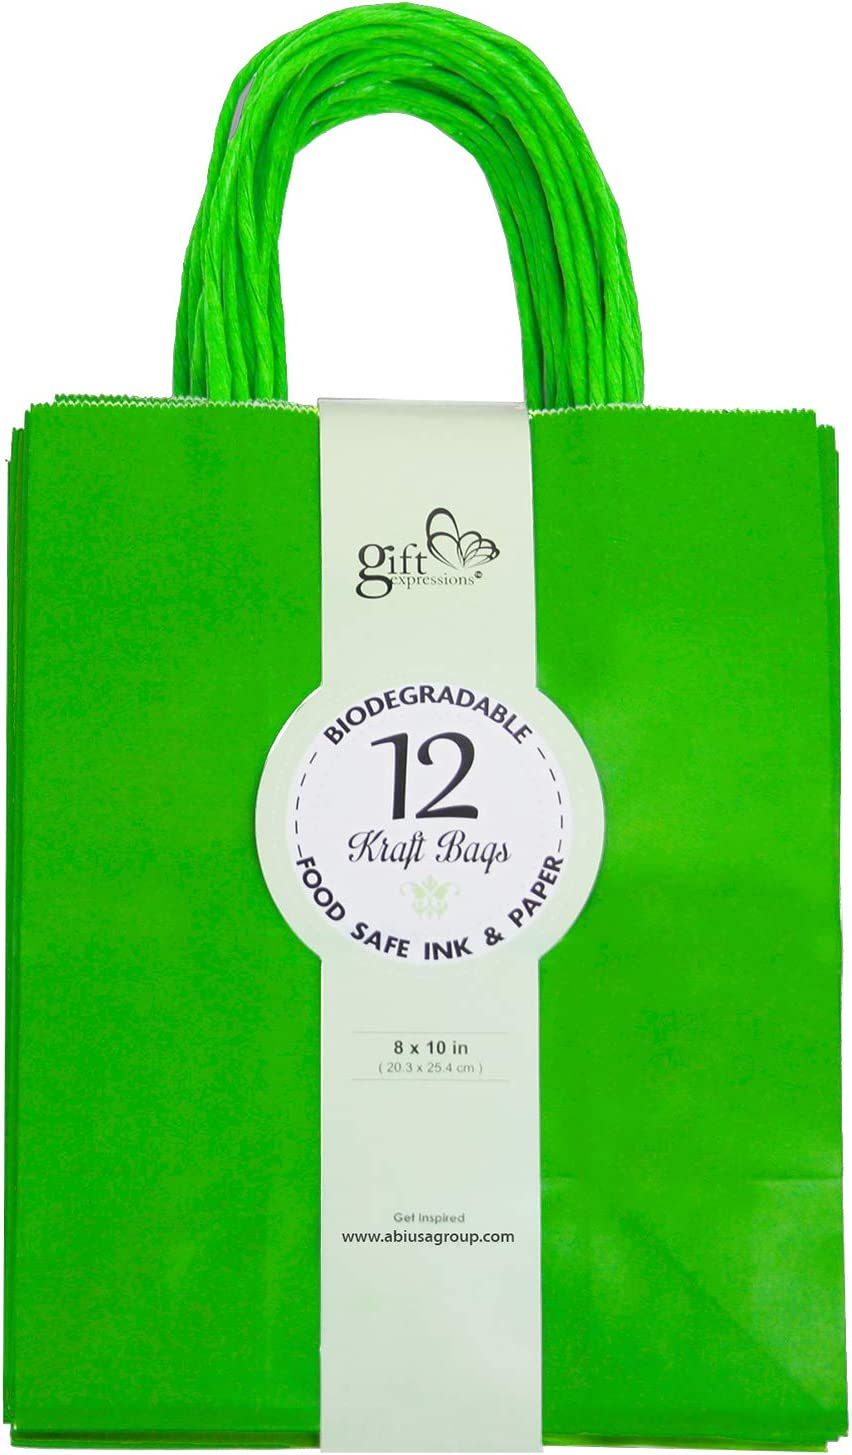 Gift Expressions 24CT Medium Green Biodegradable, Food Safe Ink & Paper, Premium Quality Paper (Sturdy & Thicker), Kraft Bag with Colored Sturdy Handles (Medium, Green)